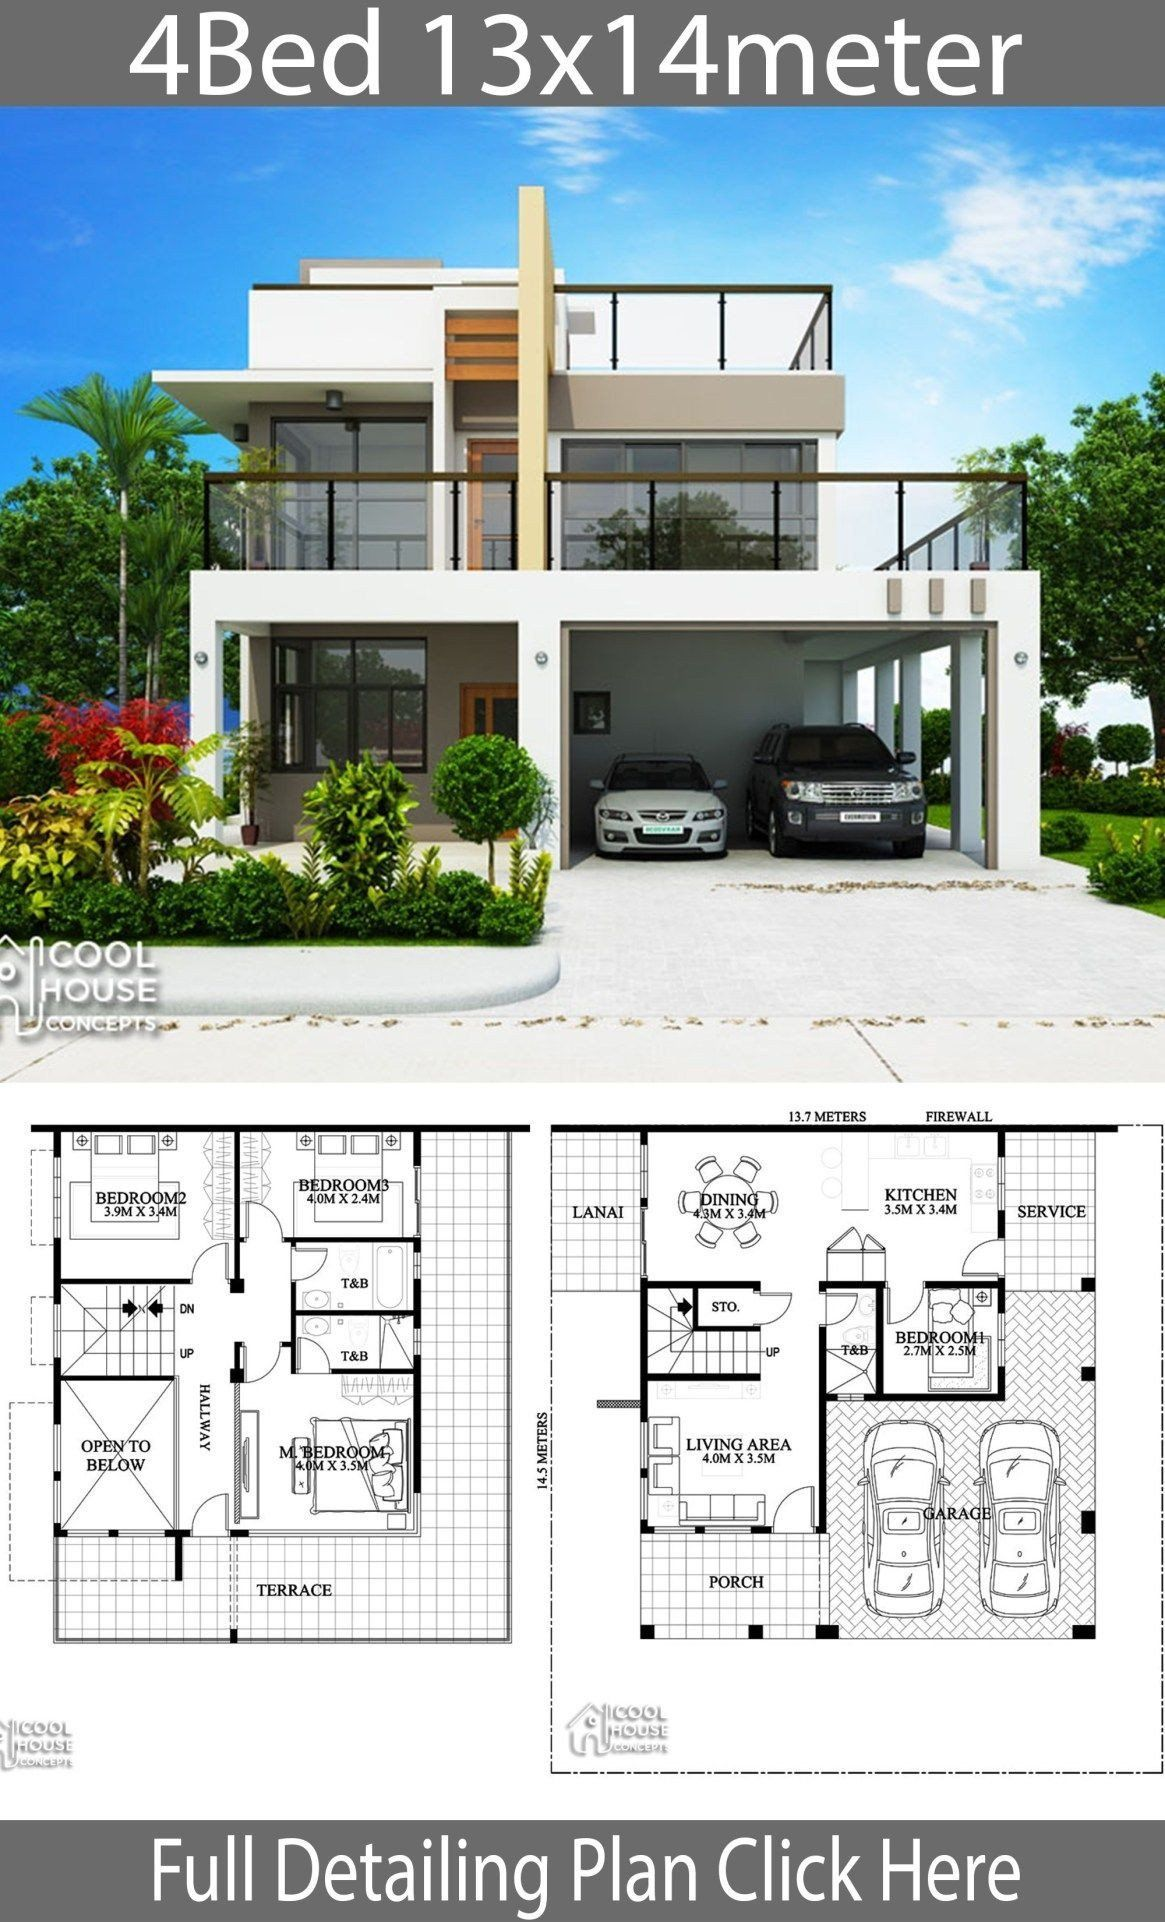 4 Bedroom Bungalow Architectural Design Awesome Home Design Plan 13x14m With 4 Bedrooms House Layout Plans Bungalow House Design House Designs Exterior